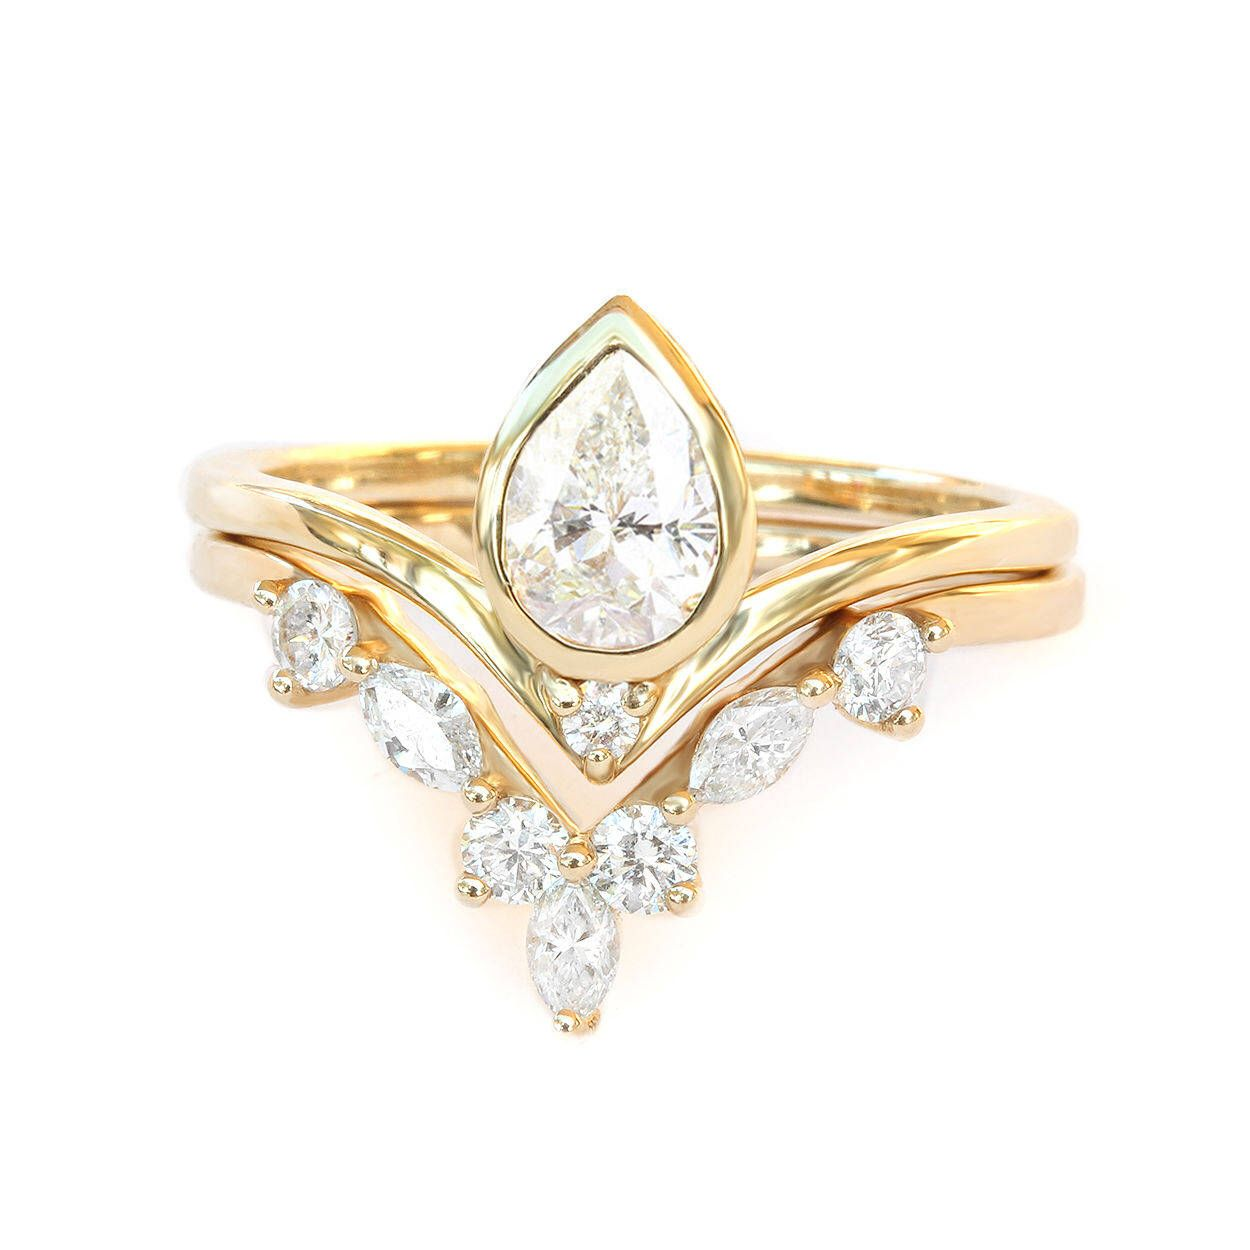 distinctively shaped love but popularity banners pear diamond engagement co remarkable eshop your gabriel stylish rings commemorate are engagementrings cut remain gaining today style vintage with a choice bridal